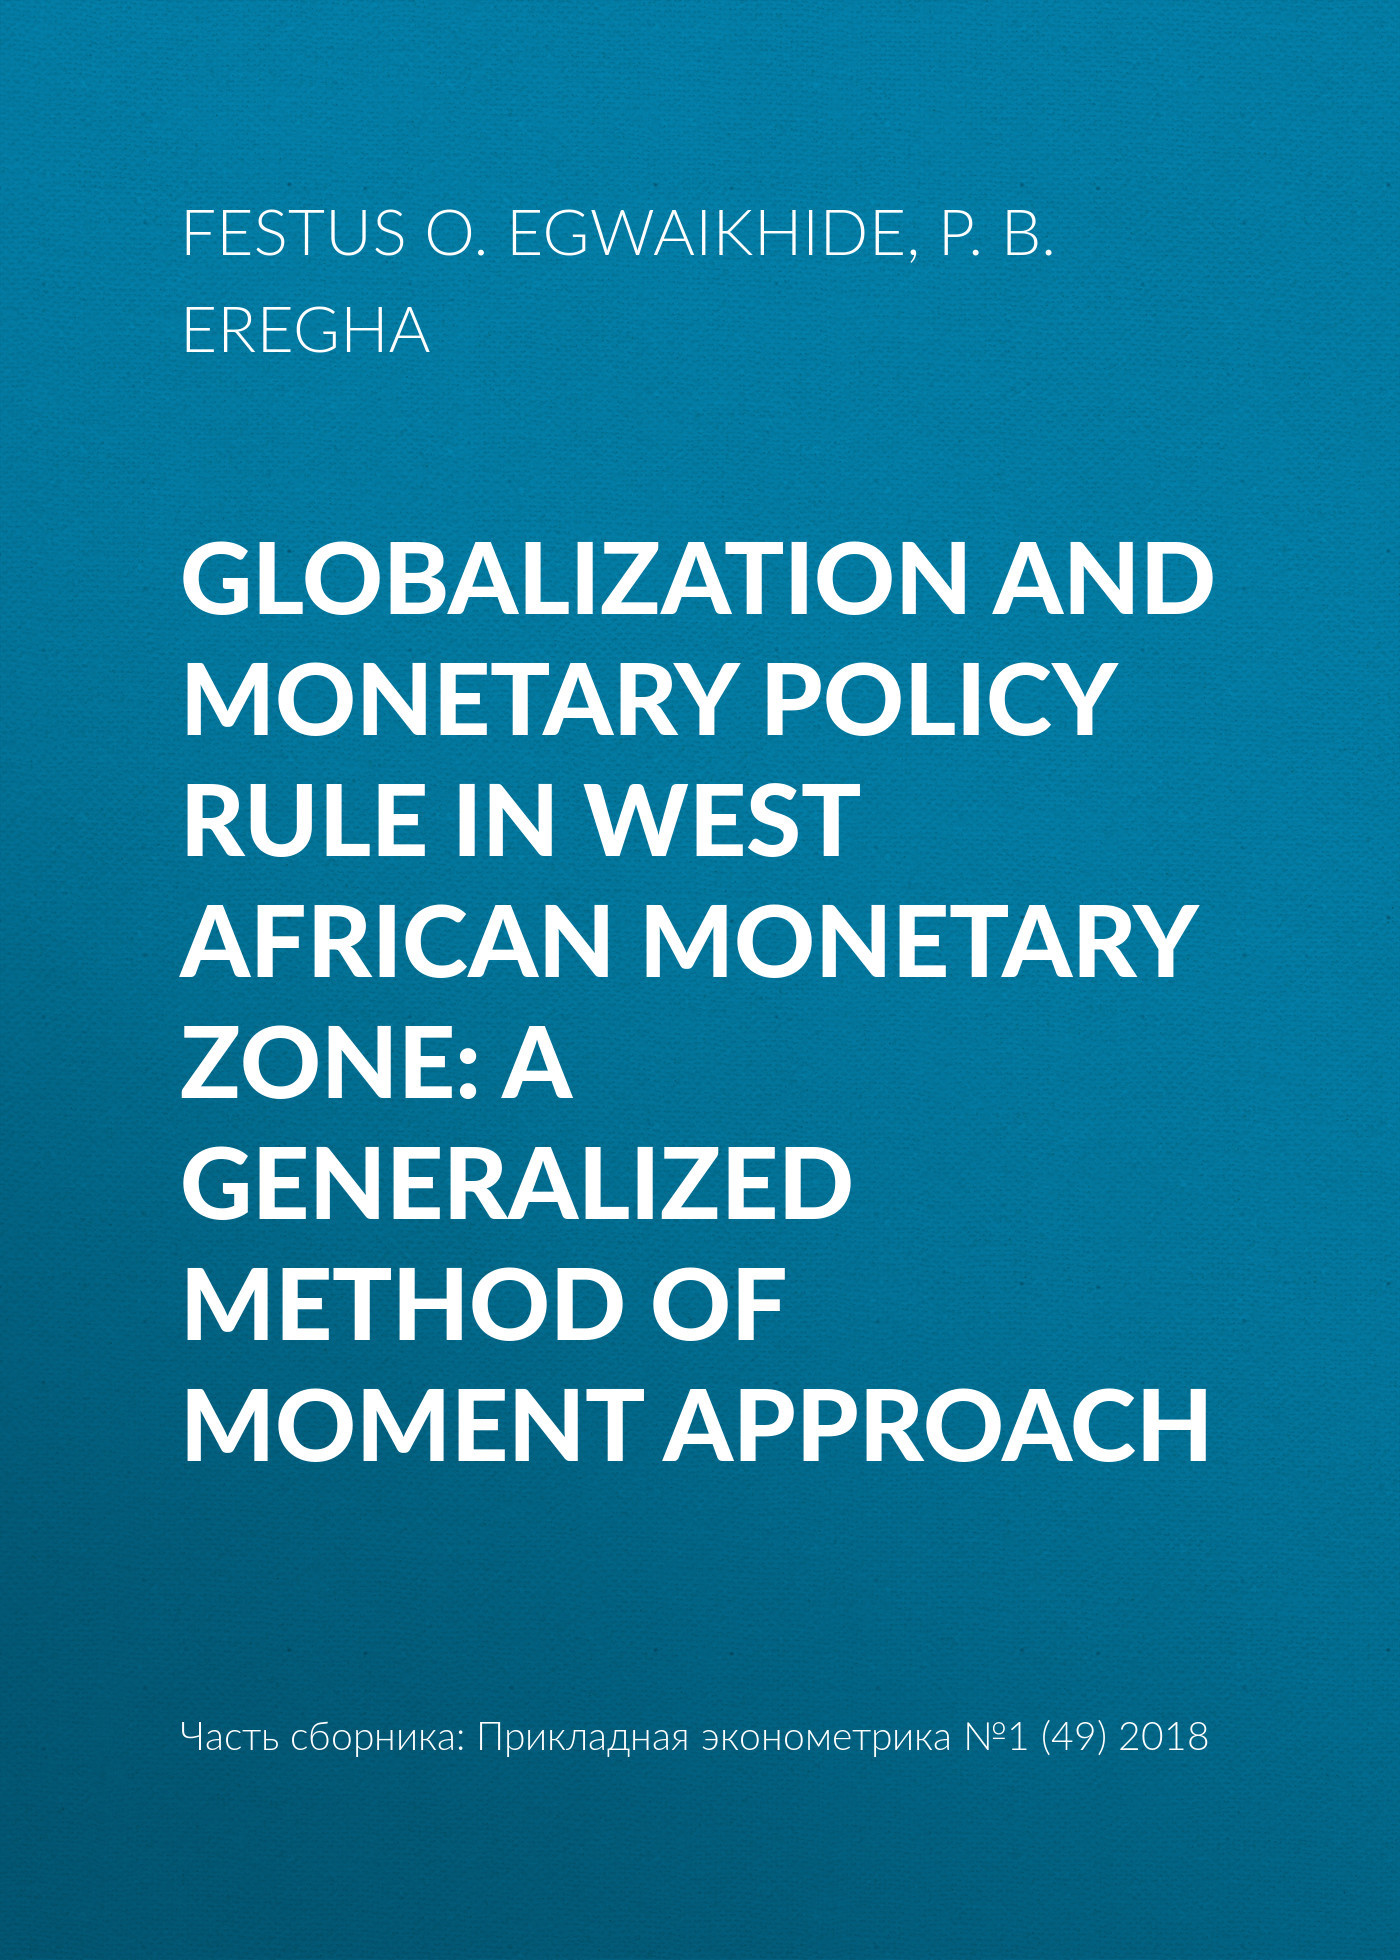 Festus O. Egwaikhide Globalization and monetary policy rule in West African Monetary Zone: A generalized method of moment approach roubloff кисть qa10 белка круглая 12